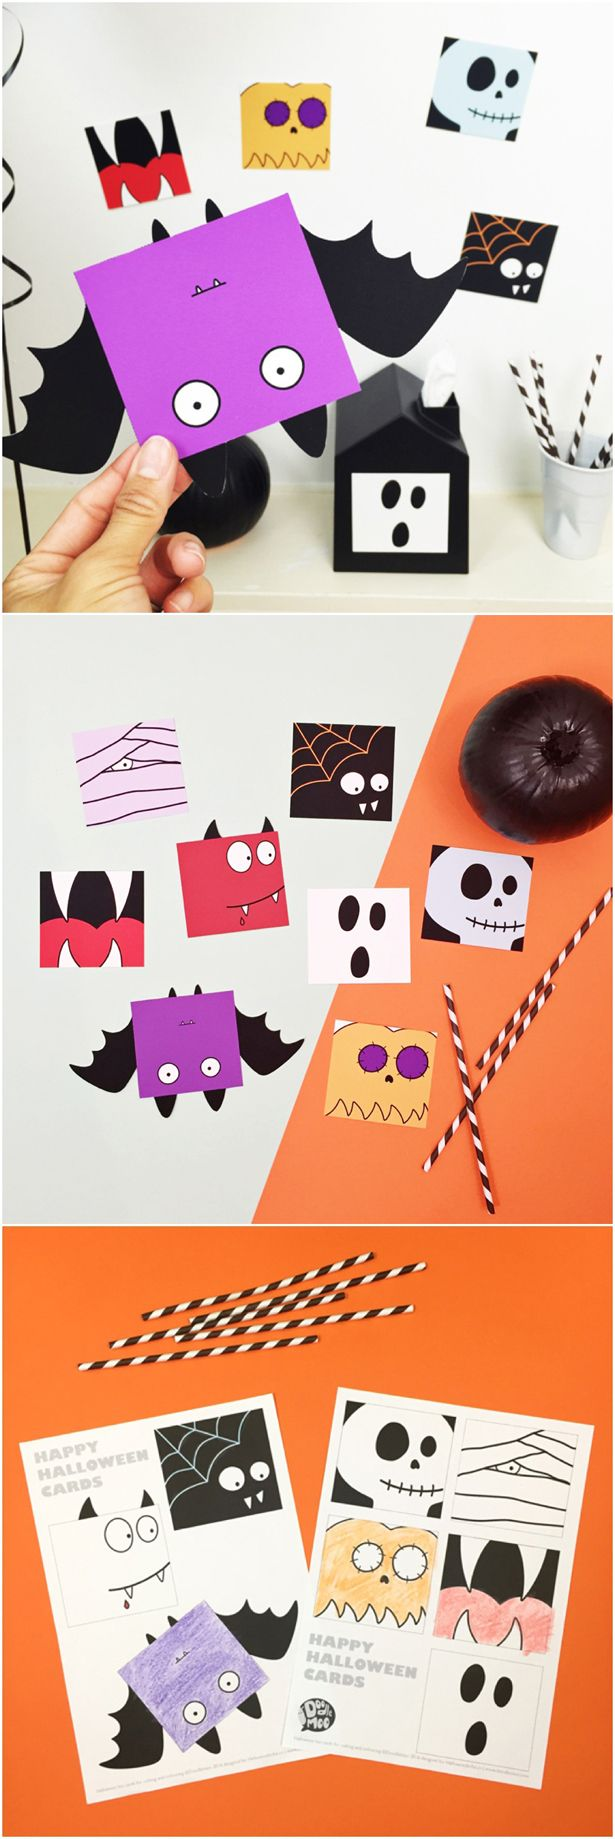 Free Printable Halloween Fun Cards for Kids with Coloring Option ...